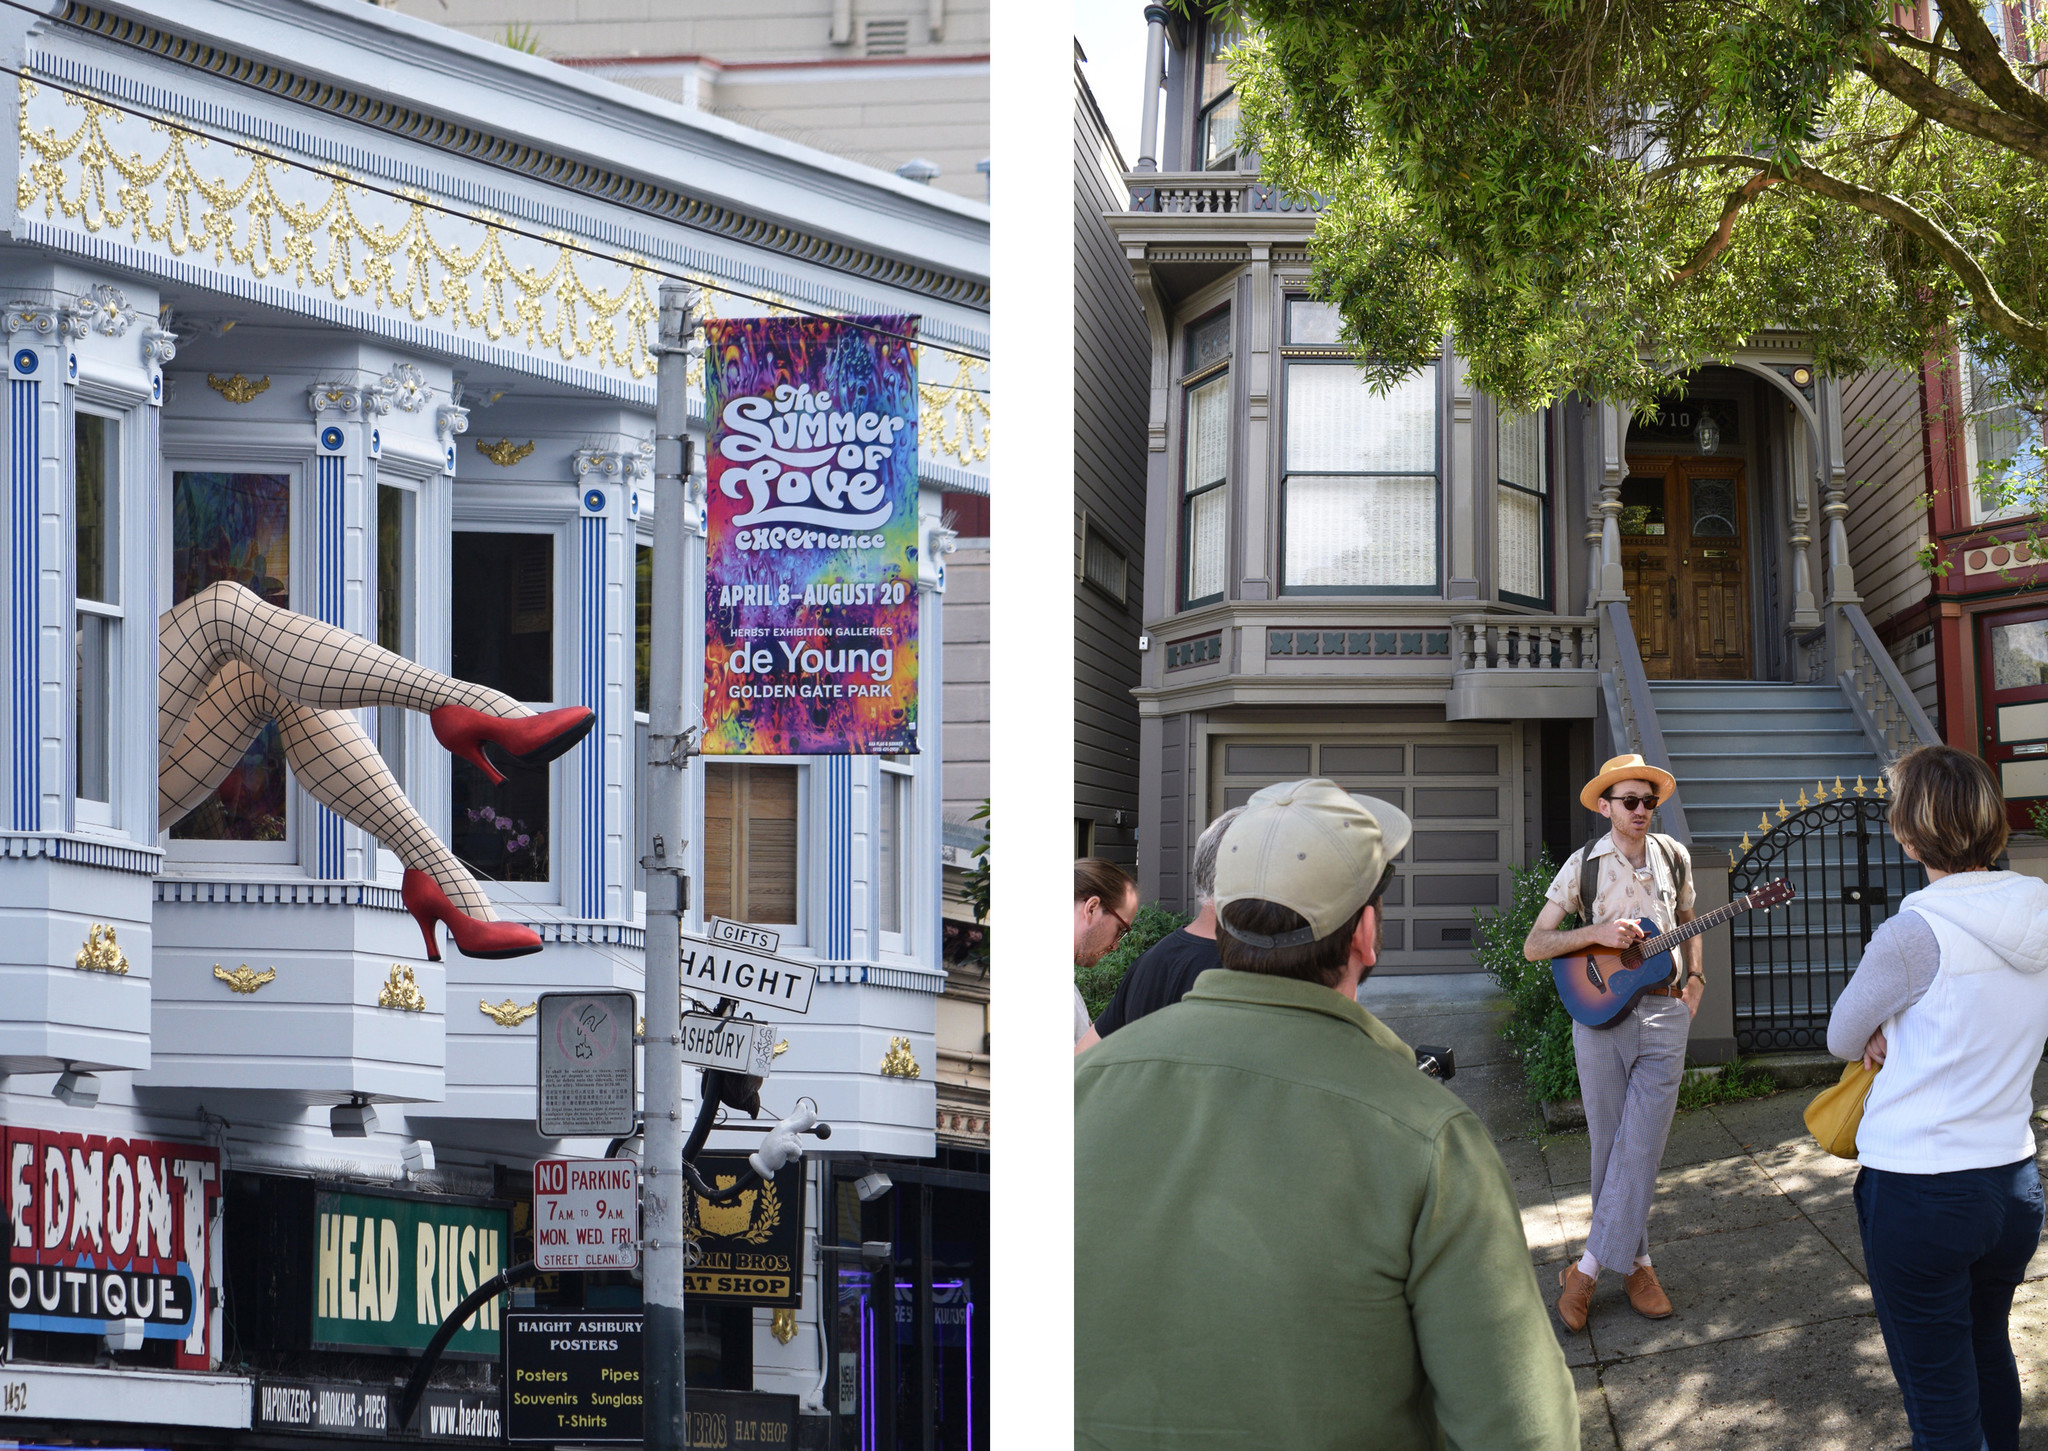 Stockinged legs, left, hang out the window of the Piedmont Boutique on Haight Street. Wes Leslie, right center, of Wild SF Walking Tours, stands in front of the former home of the Grateful Dead.